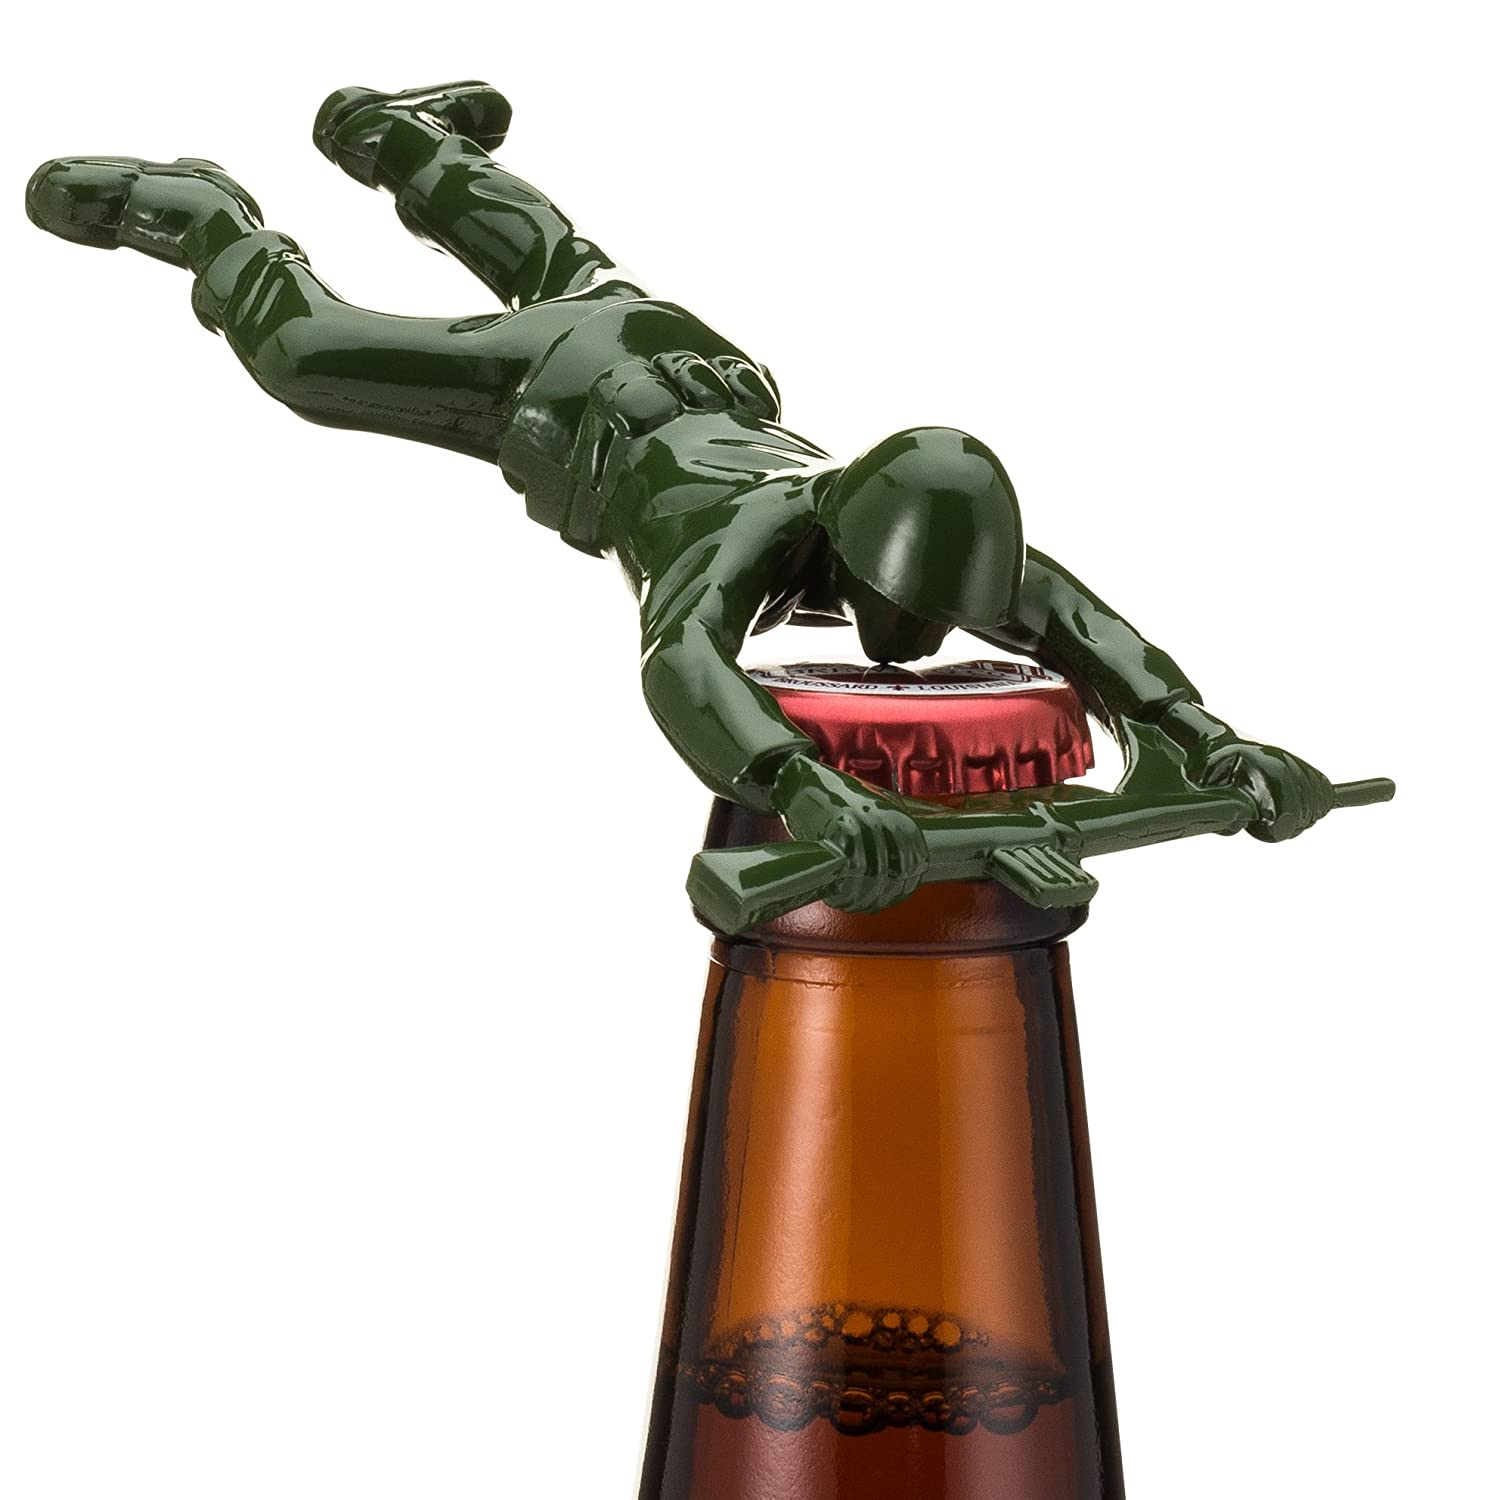 amazoncom sgt pryer green army man bottle opener fun unique gifts for men cool beer gifts kitchen u0026 dining